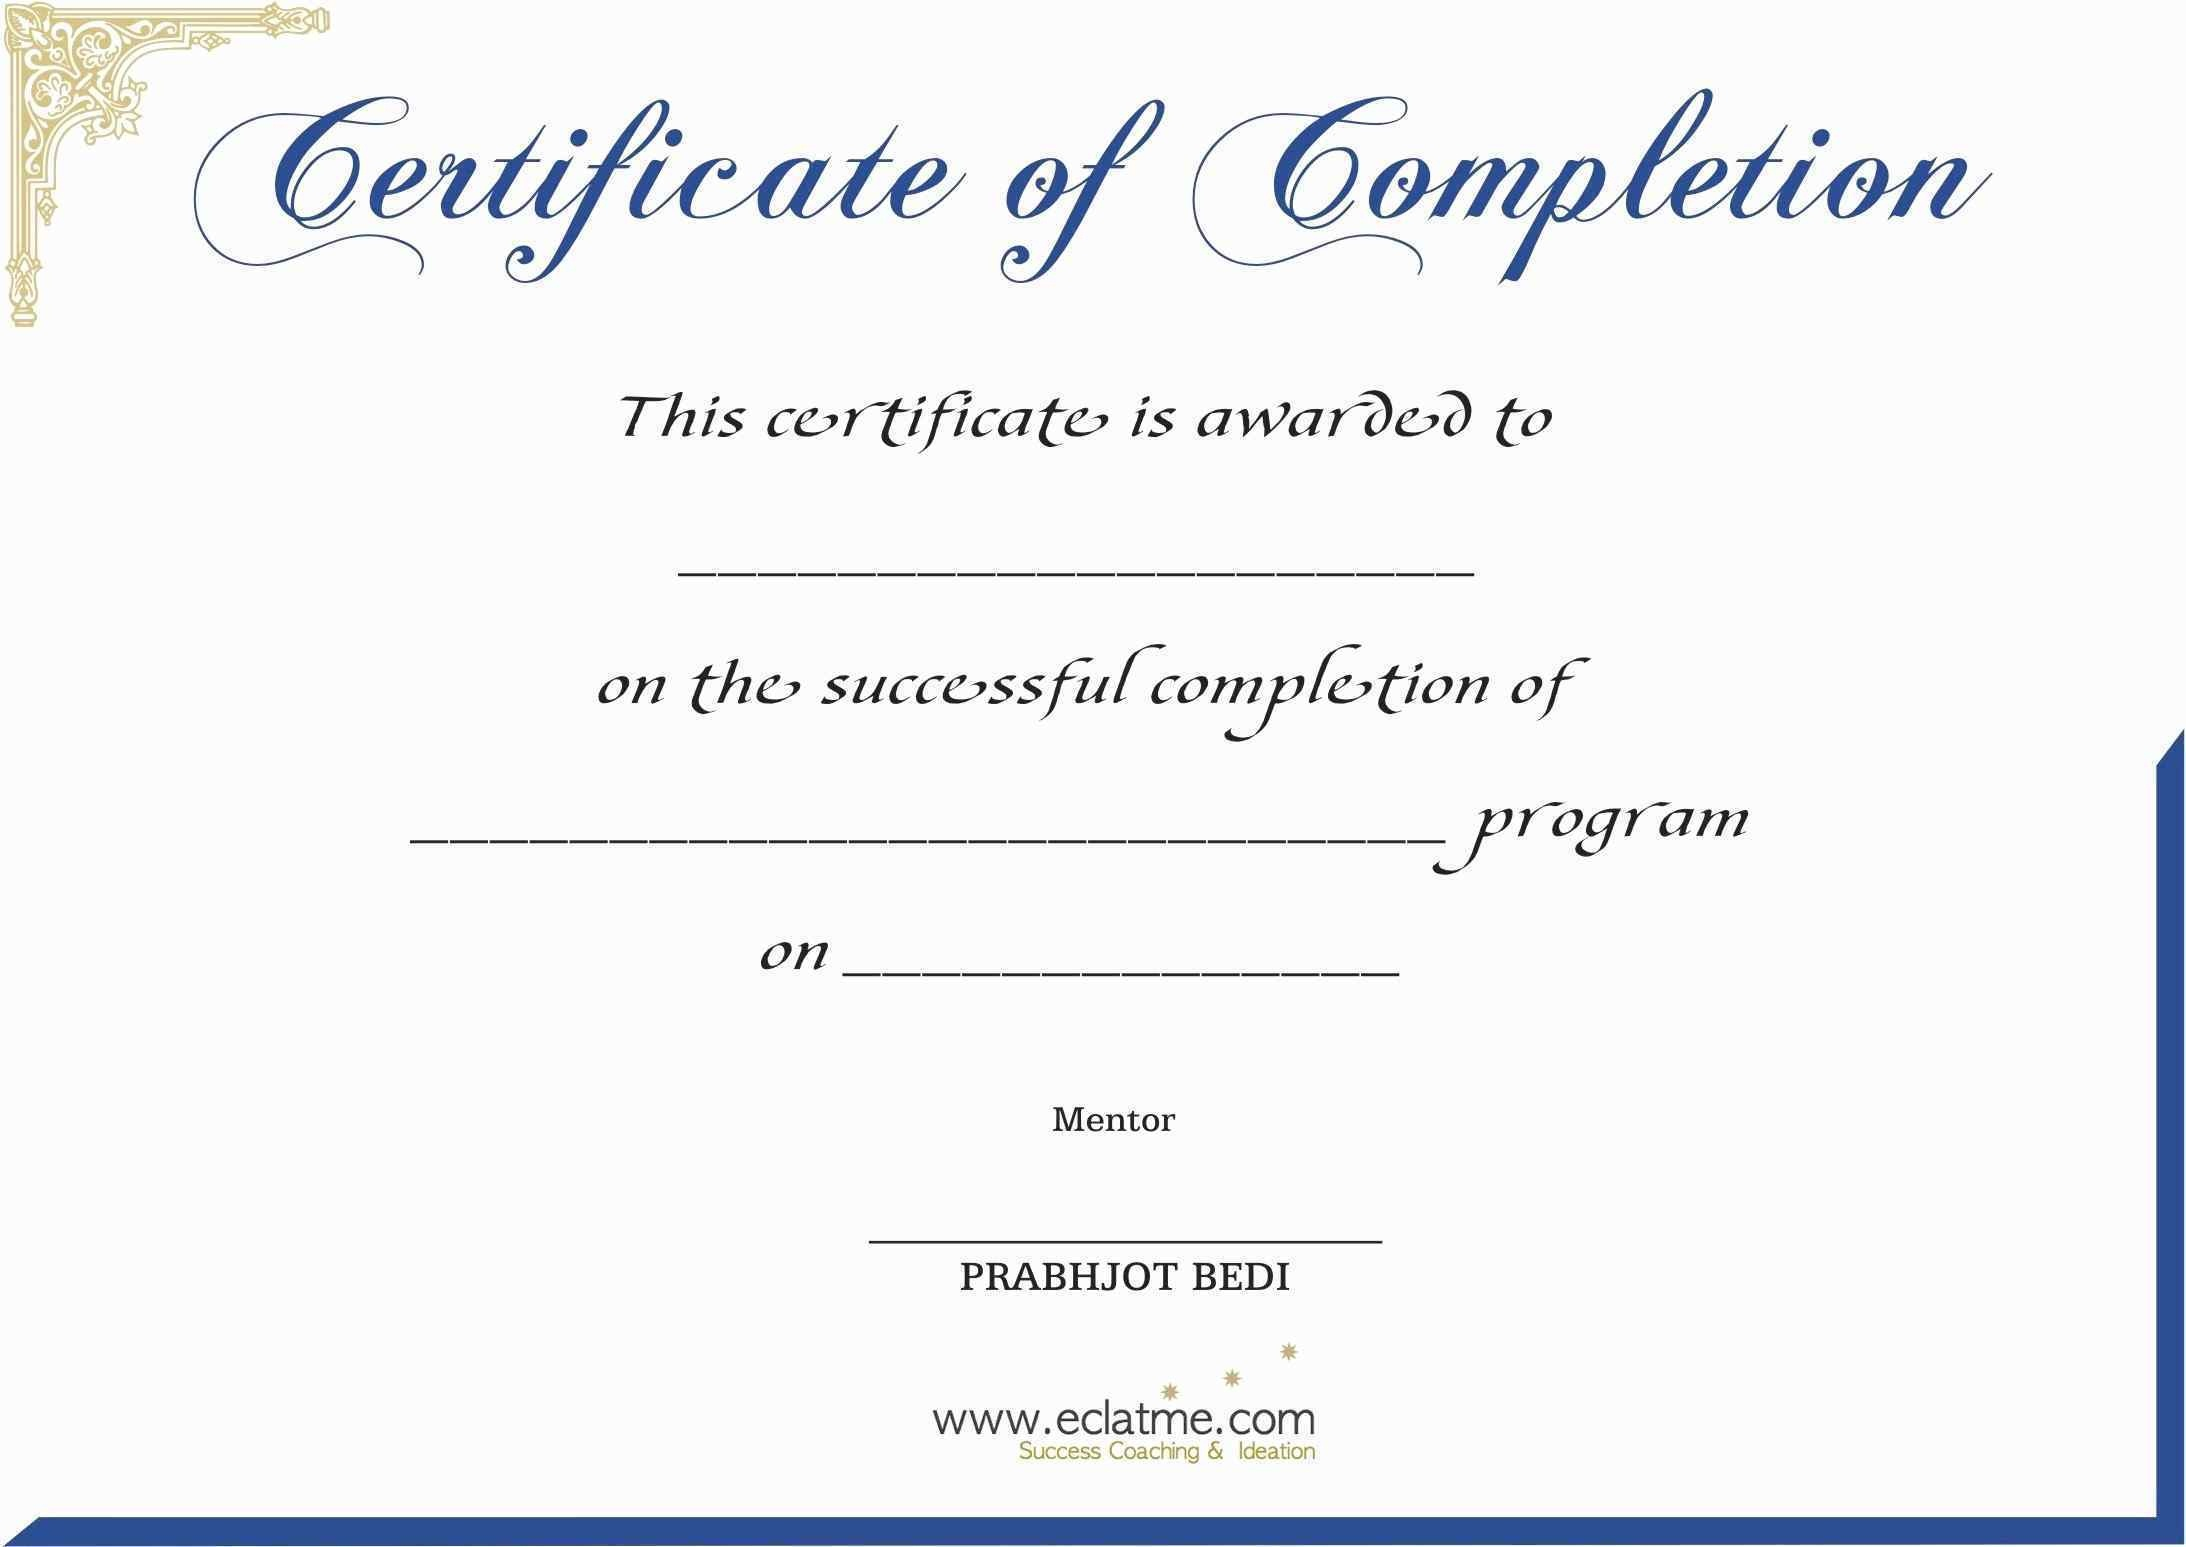 Certificate Of Completion Templates Free Printable Luxury In - Certificate Of Completion Template Free Printable